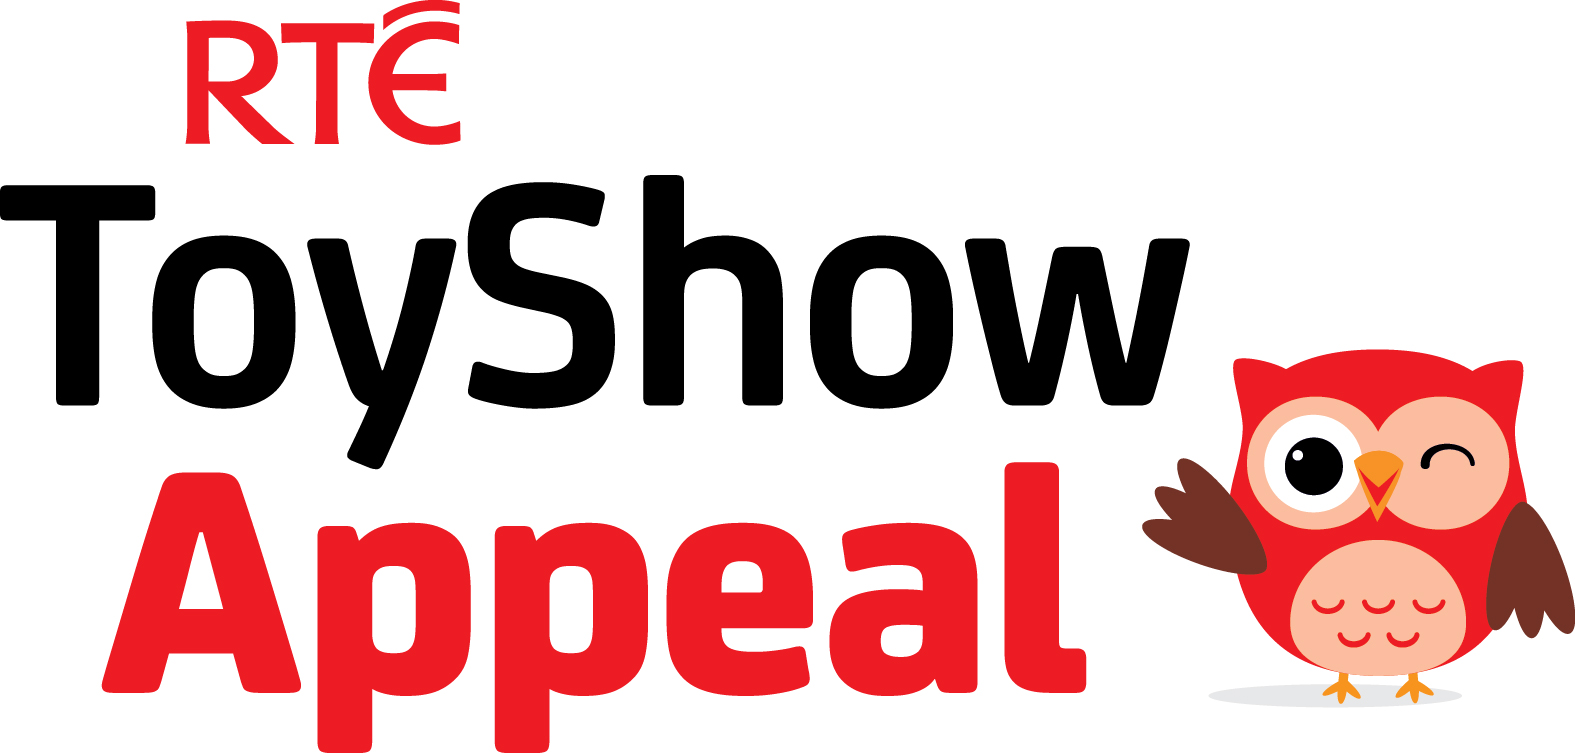 Words RTE Toy show appeal in black and red text with owl logo